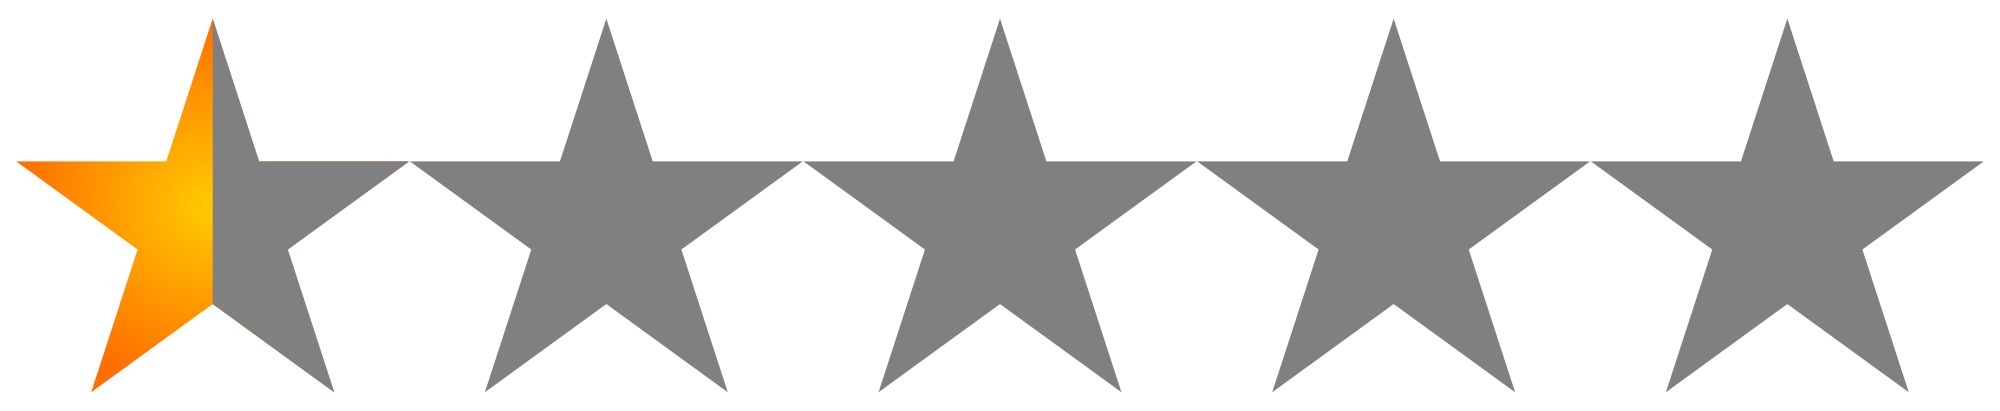 5 stars png no background. File svg wikimedia commons